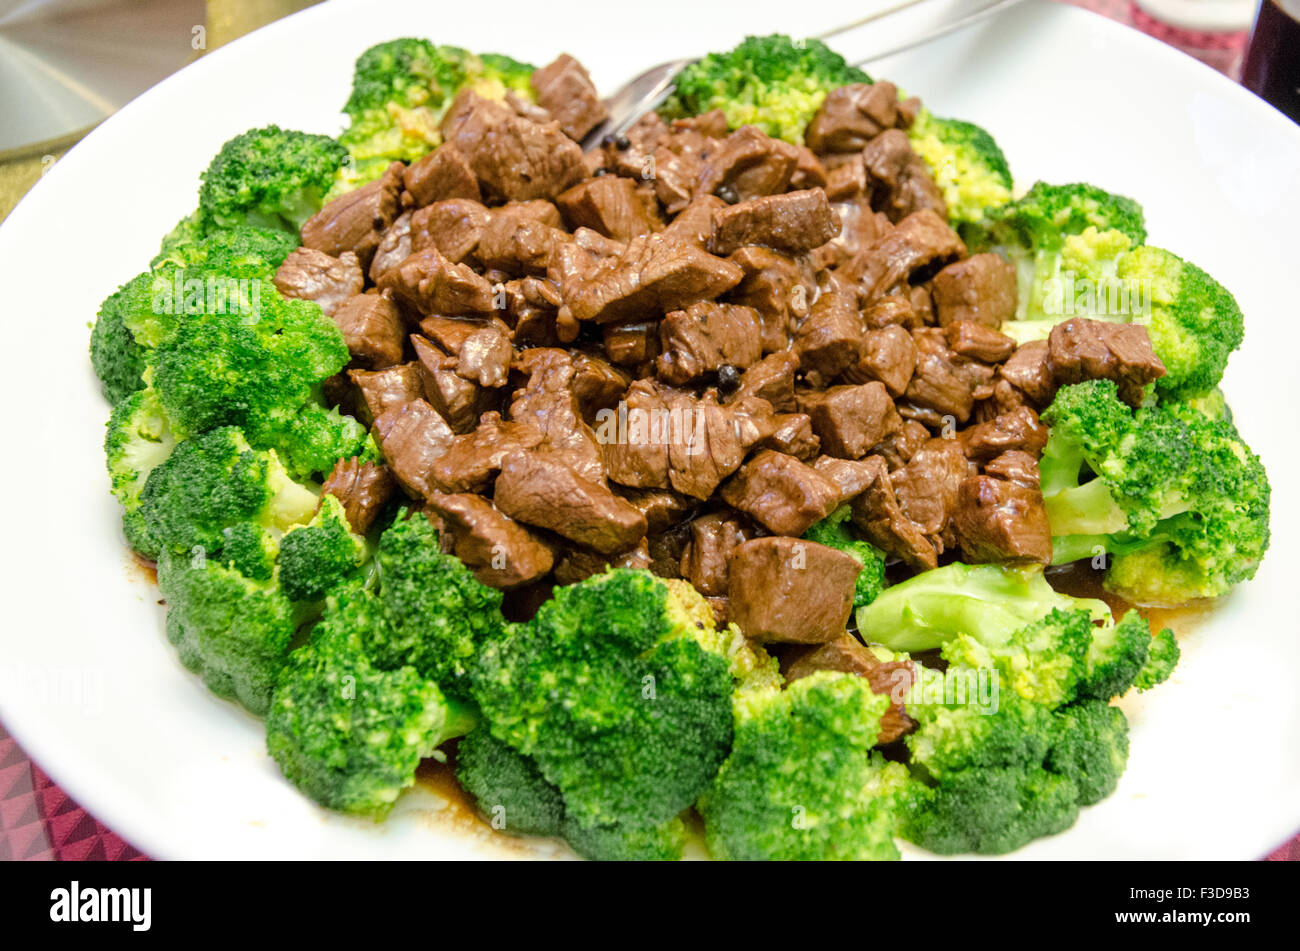 American Chinese Food Stock Photos & American Chinese Food Stock ...